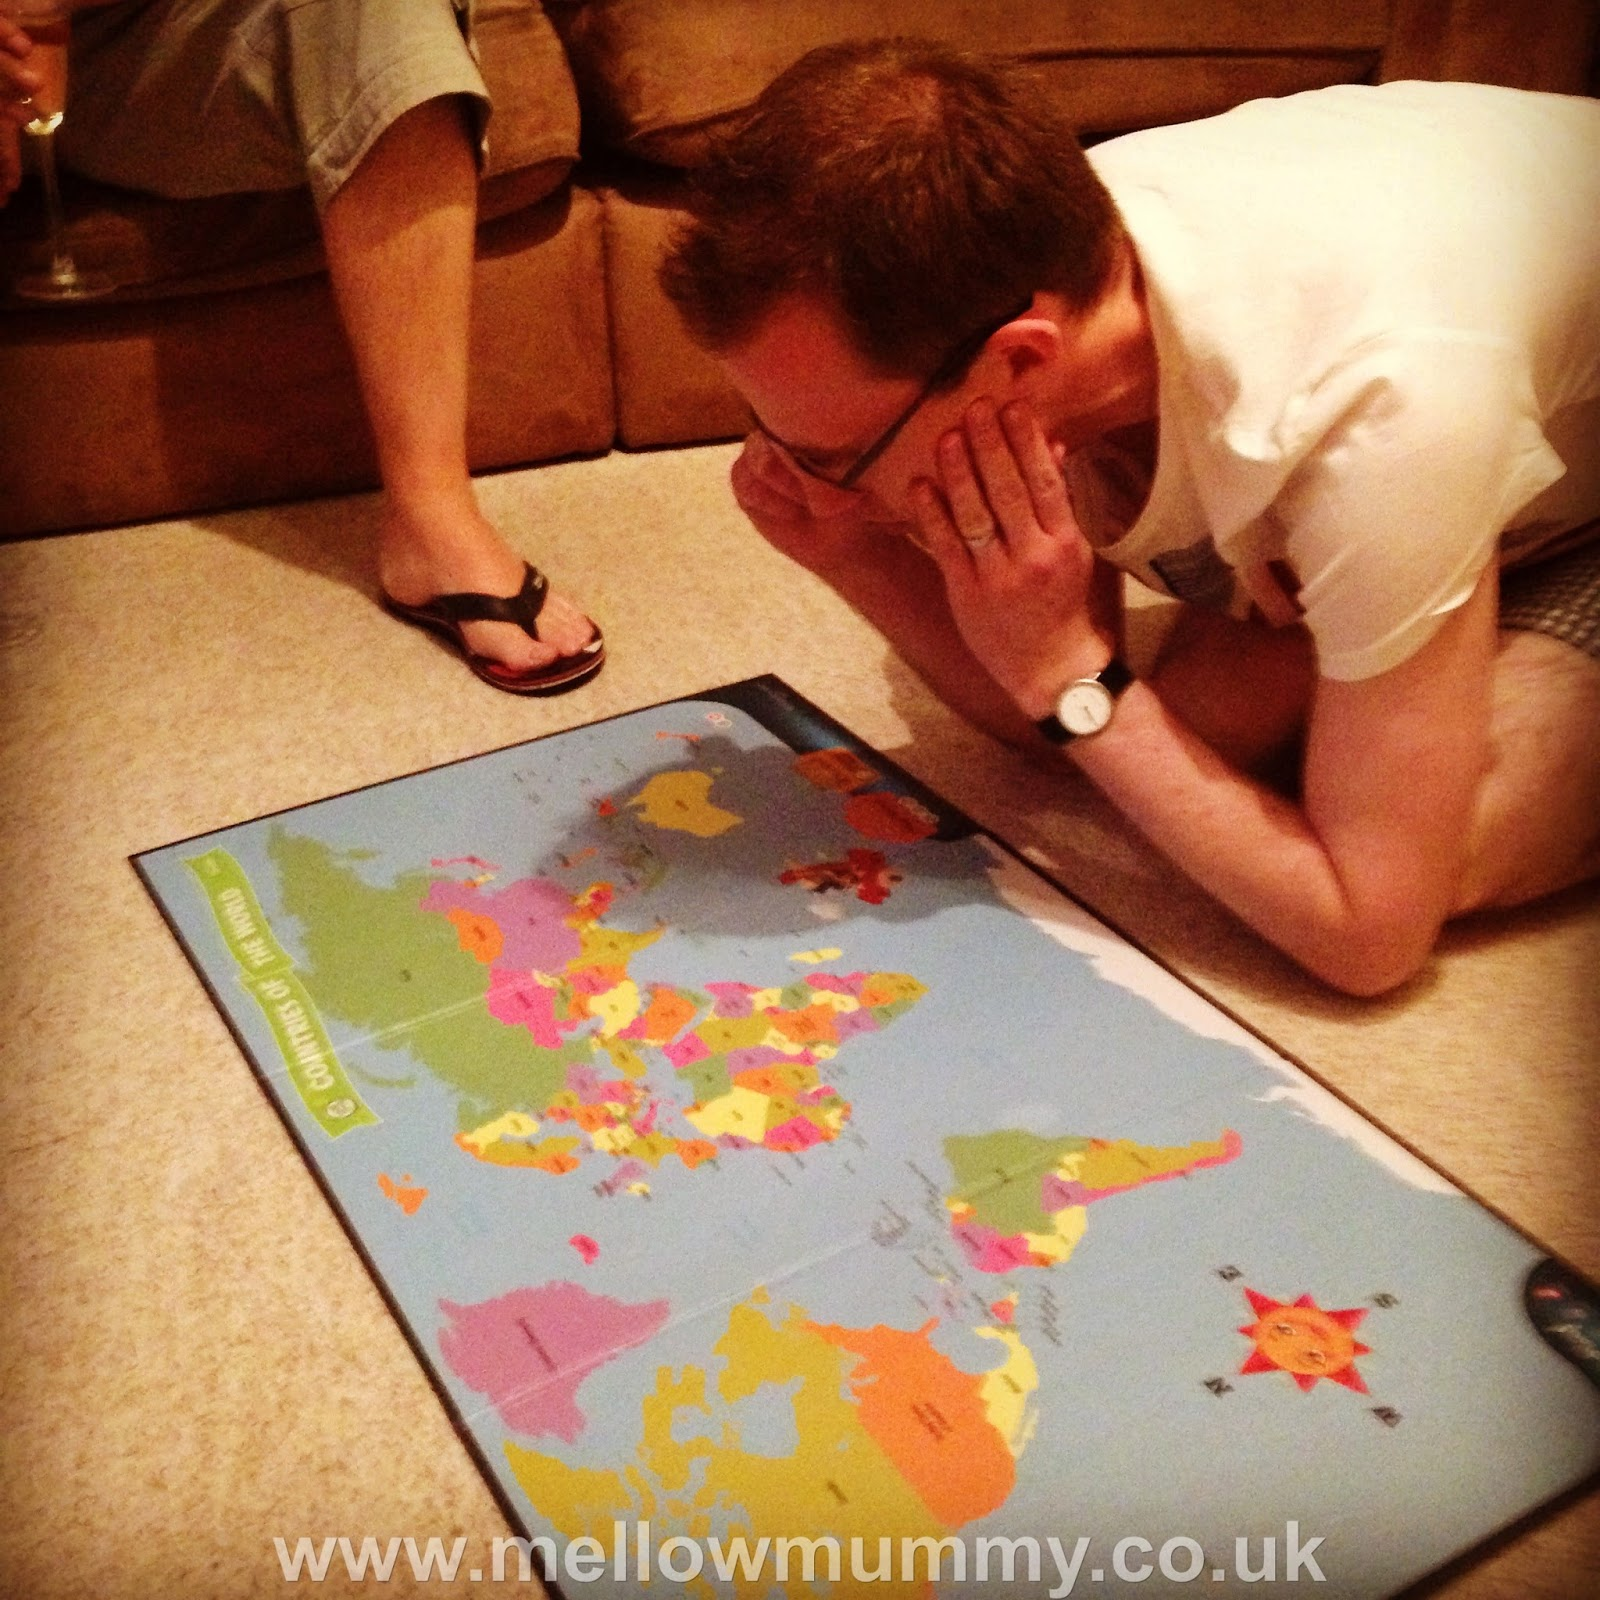 Mellow mummy leapfrog discover summer club and leapreader im really pleased that lara is enjoying her interactive world map because i have fond memories as a child of exploring my parents printed world atlas gumiabroncs Images